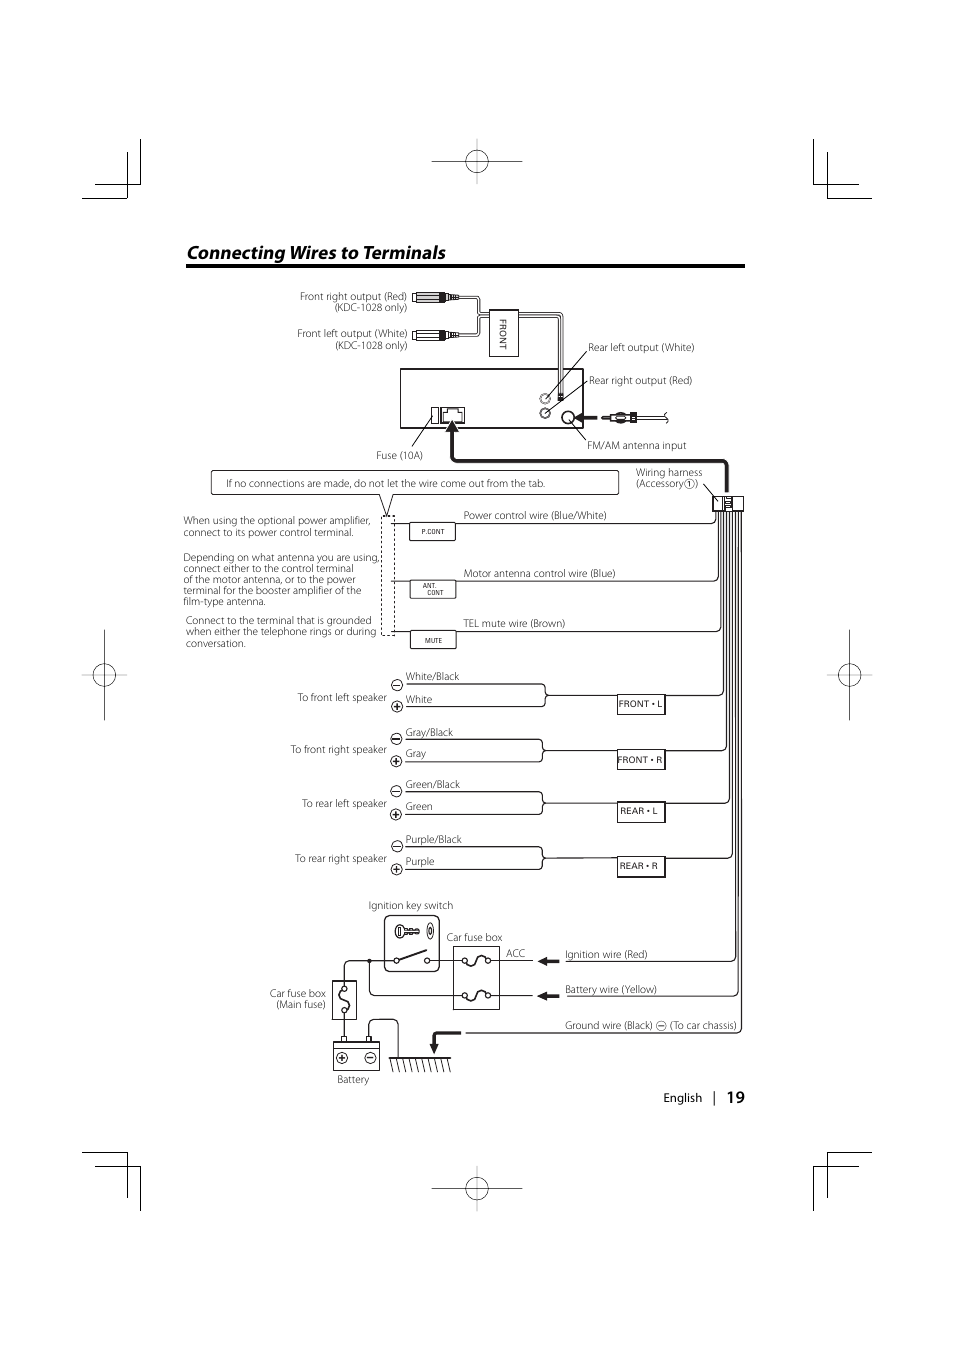 kenwood kdc 128cr page19 kenwood kdc 2019 wiring diagram kenwood wiring diagrams collection kenwood ddx514 wiring harness at bayanpartner.co